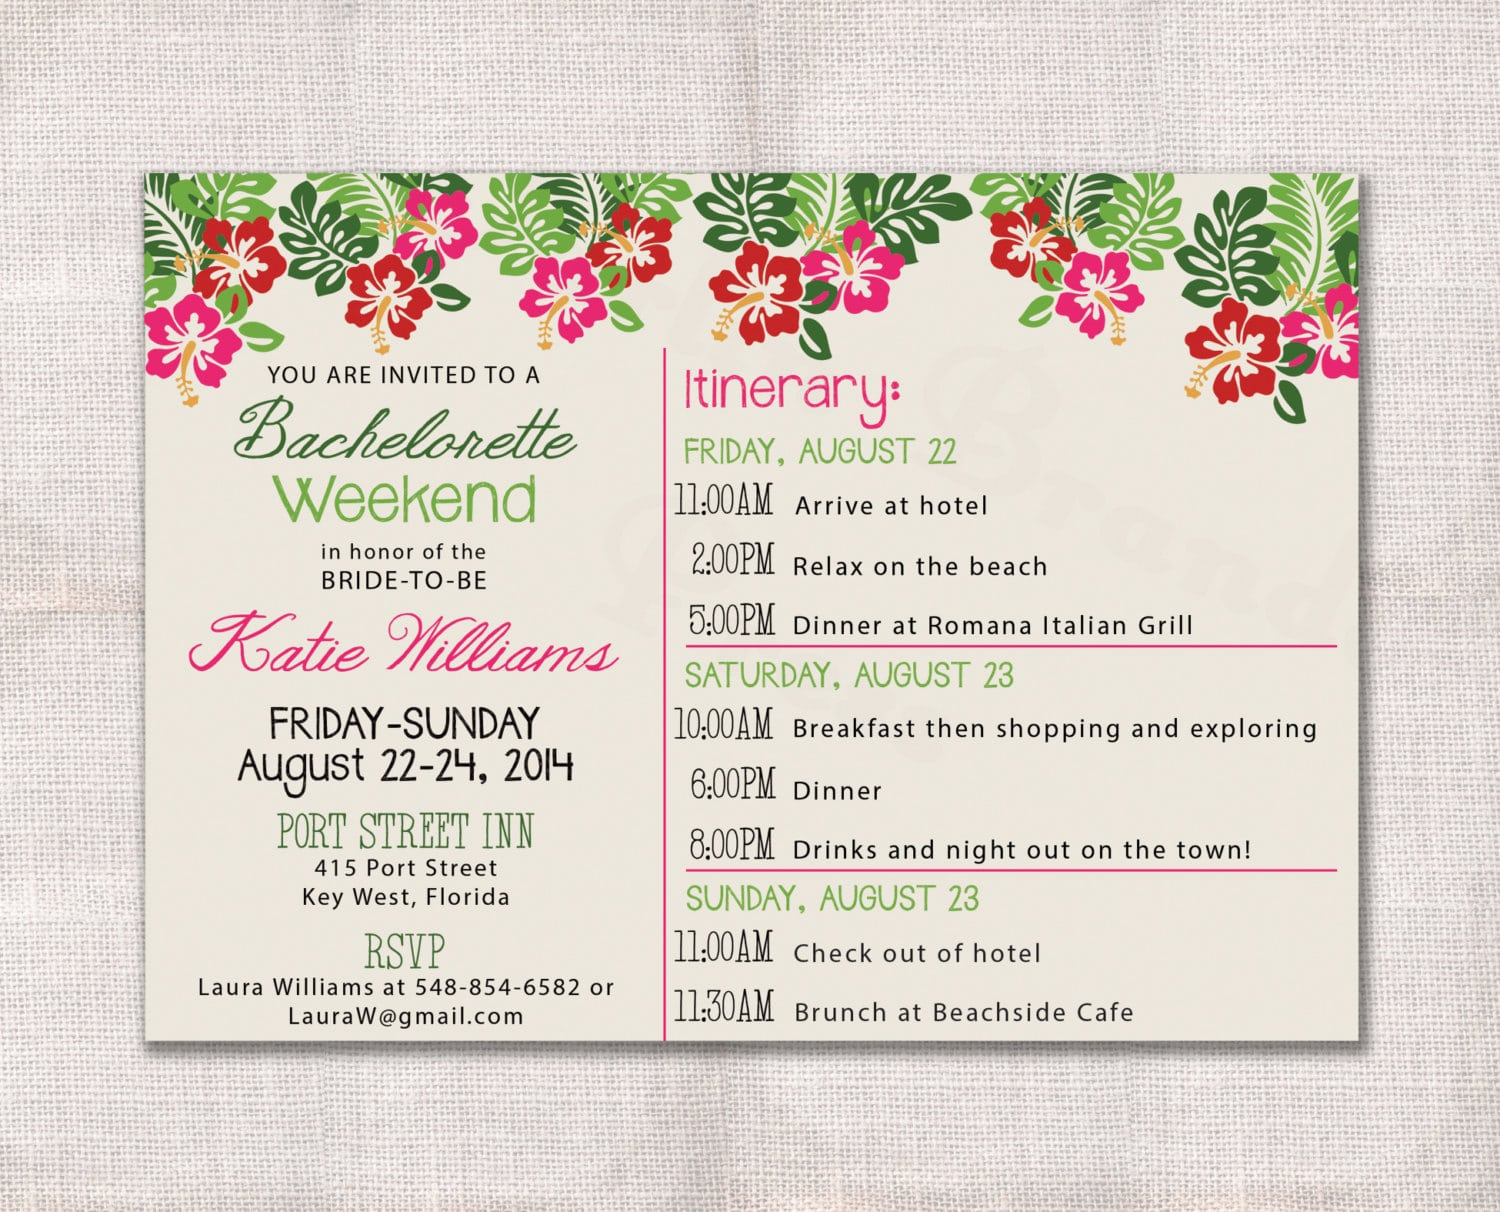 Printable Bachelorette Party Weekend Invitation And Itinerary